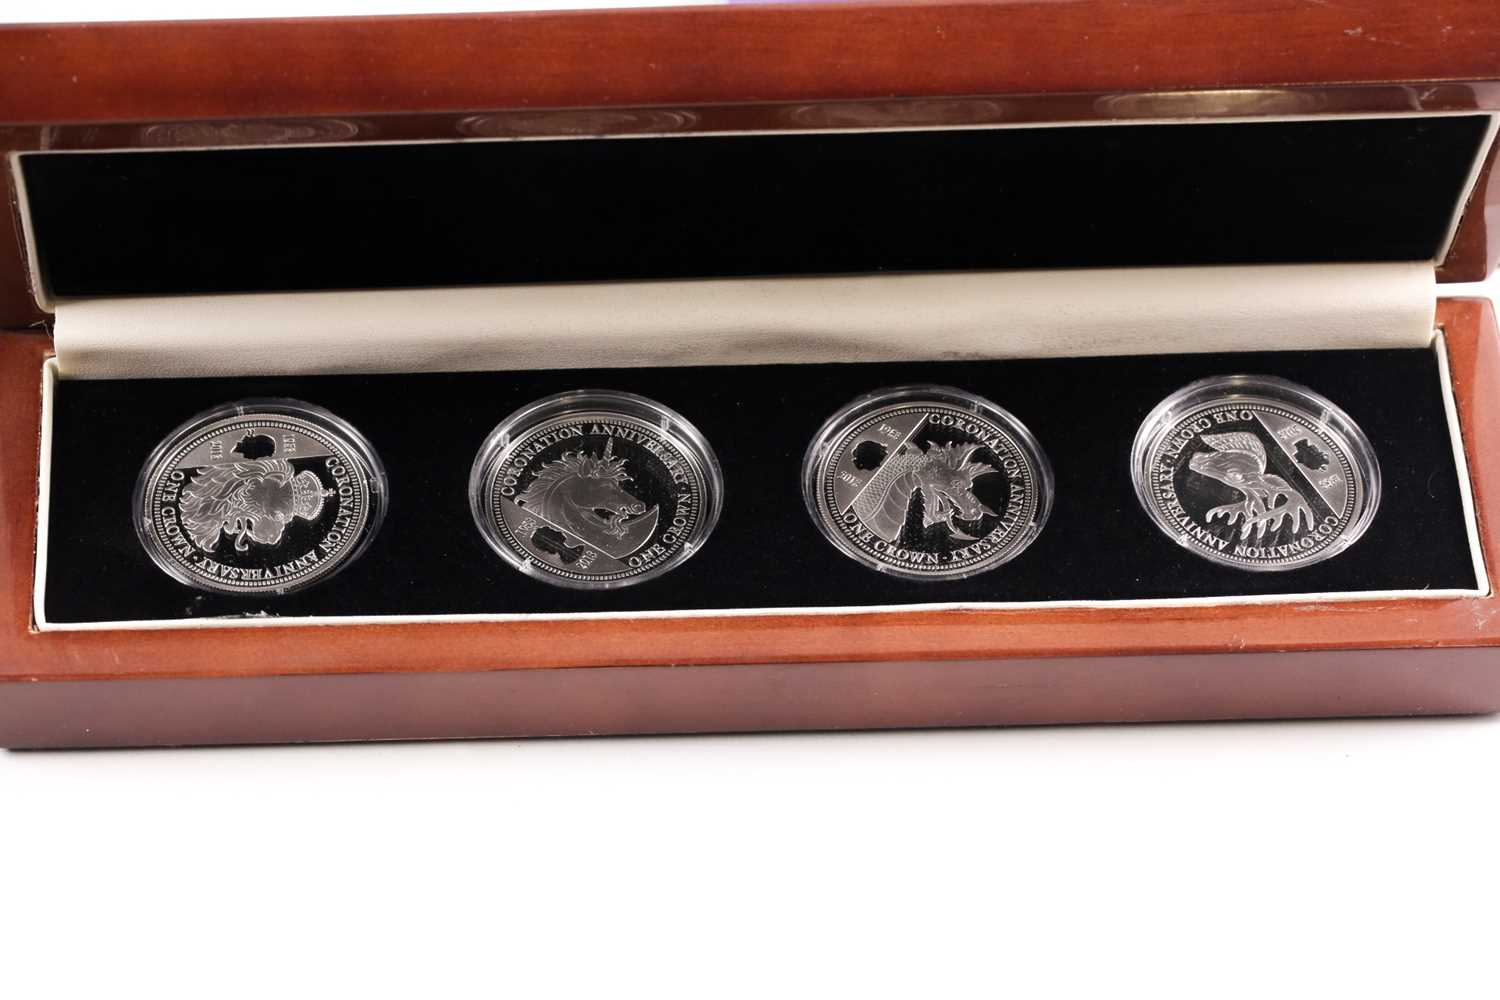 Eight boxed sets of commemorative coins, comprising: 'Squadrons of the Royal Air Force' four-coin - Image 8 of 9